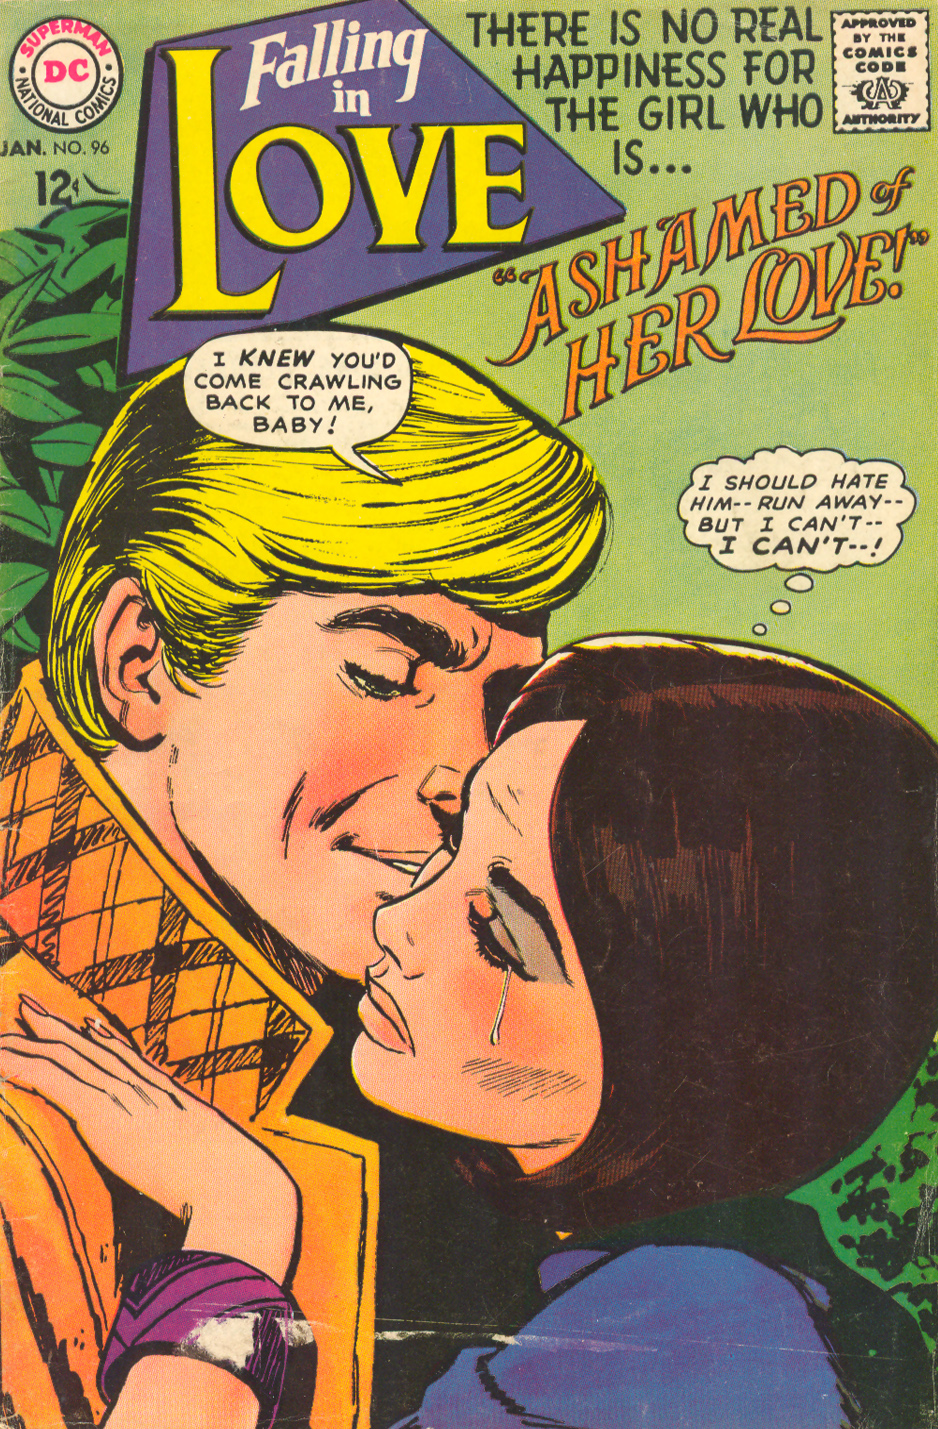 Falling in Love Jay Scott Pike romance comic book story